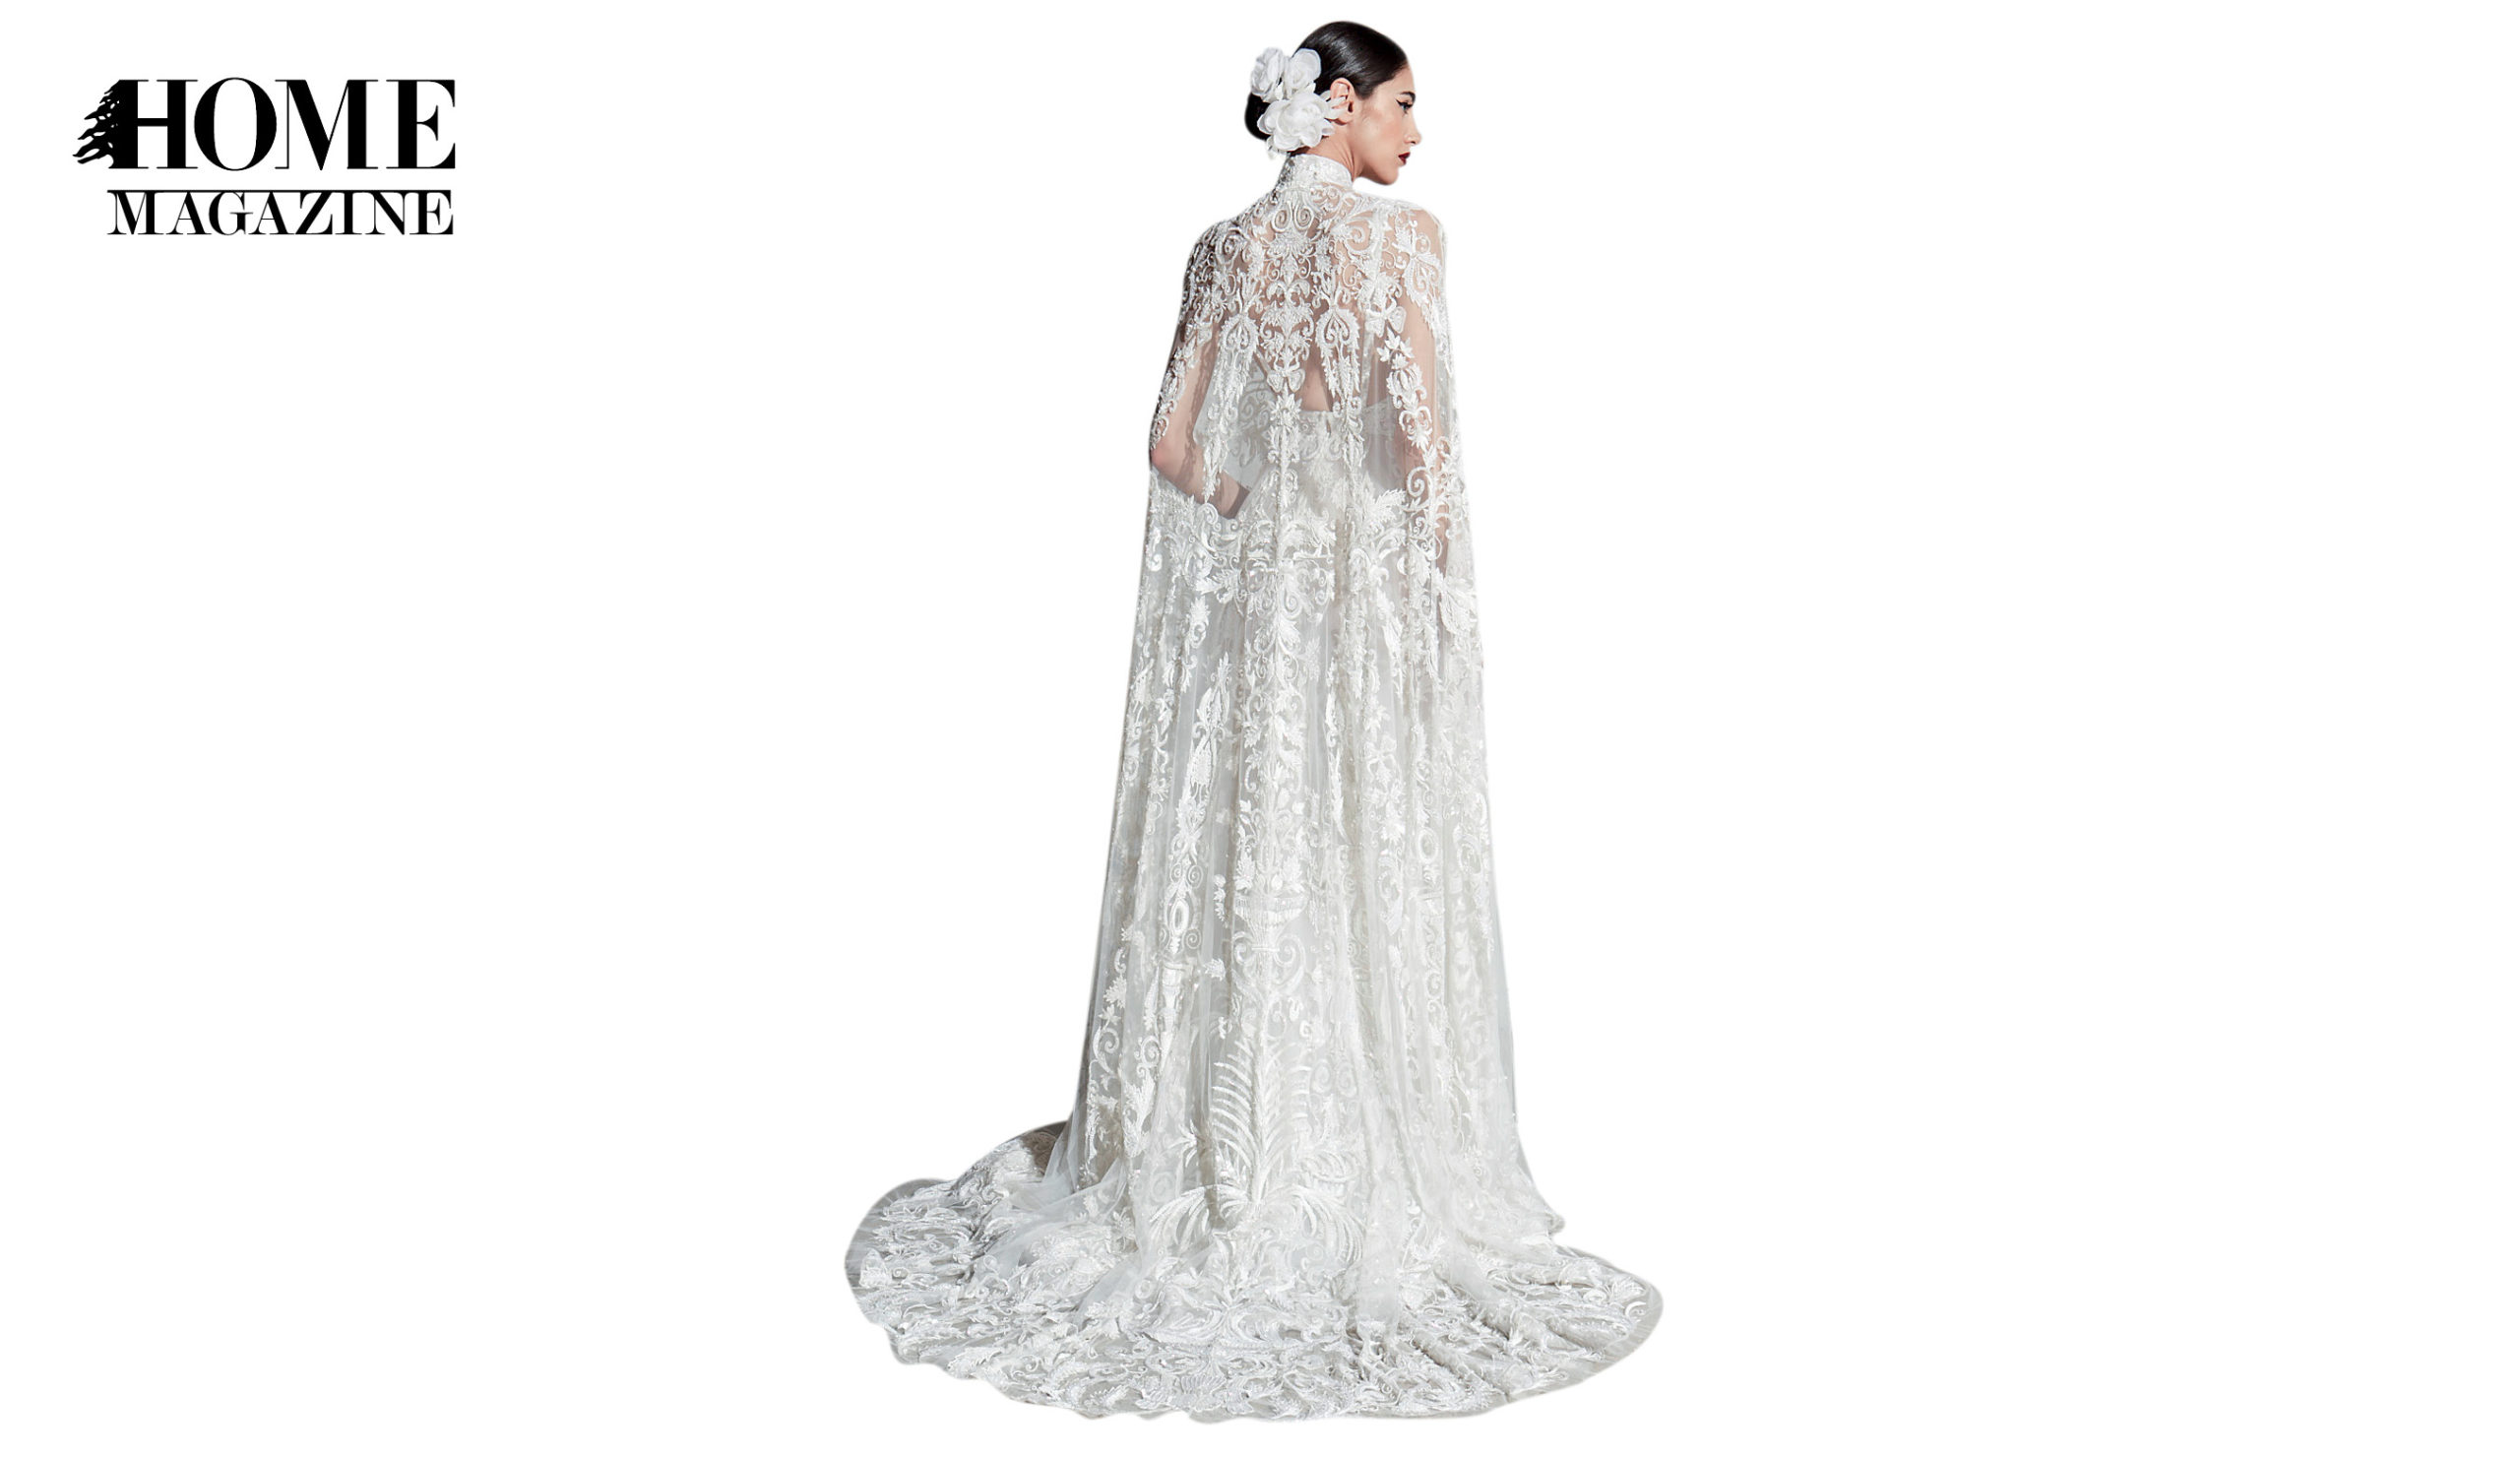 Back view of model in bridal dress